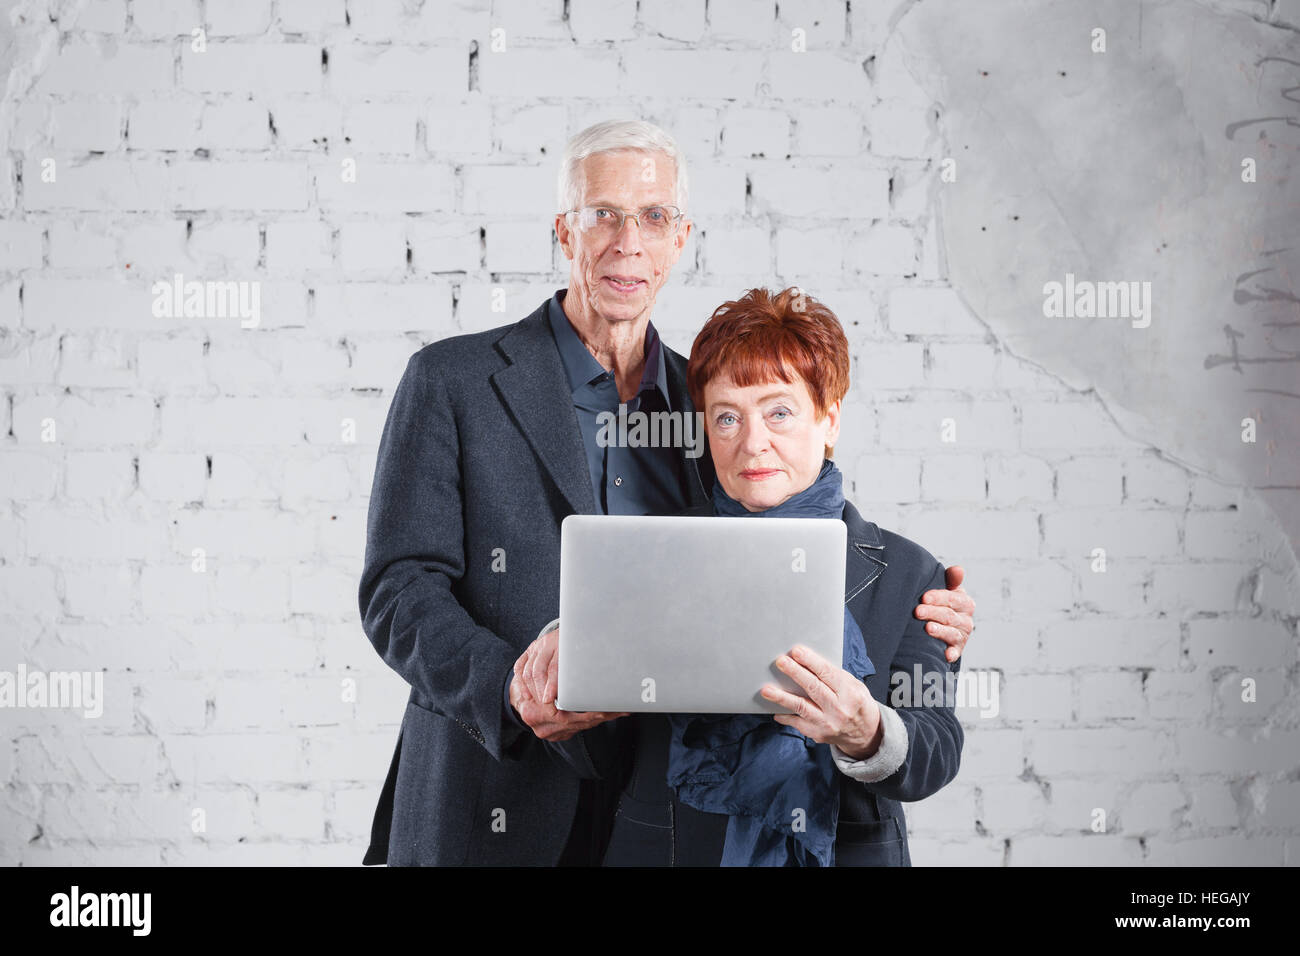 Old people hold a laptop and communicate through the Internet. Happy smiling grandpa grandma couple standing cuddling - Stock Image